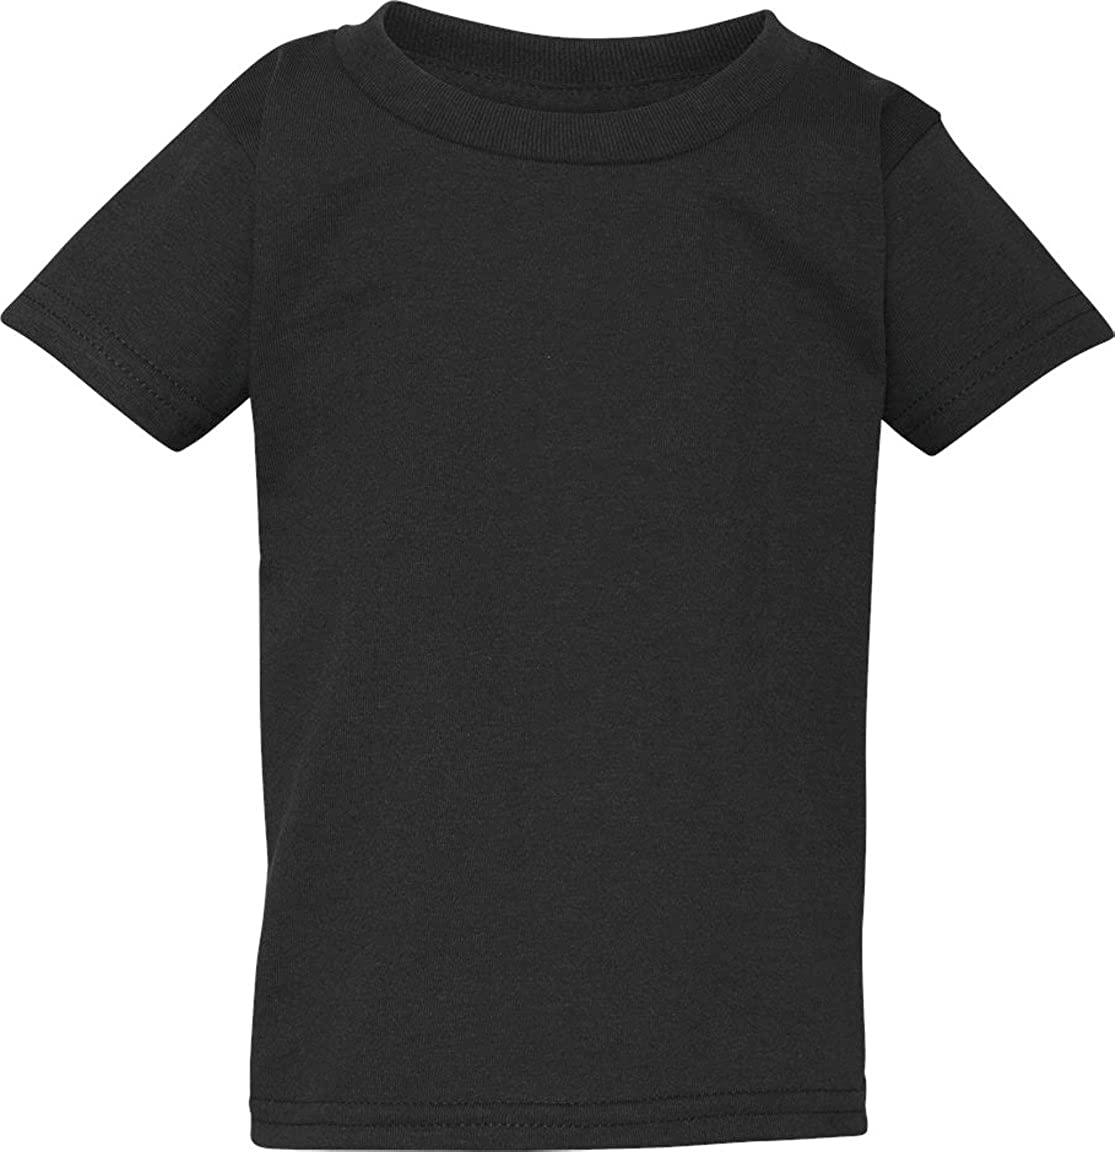 Gildan Heavy CottonTM Toddler 5.3 oz. T-Shirt (G510P) BLACK